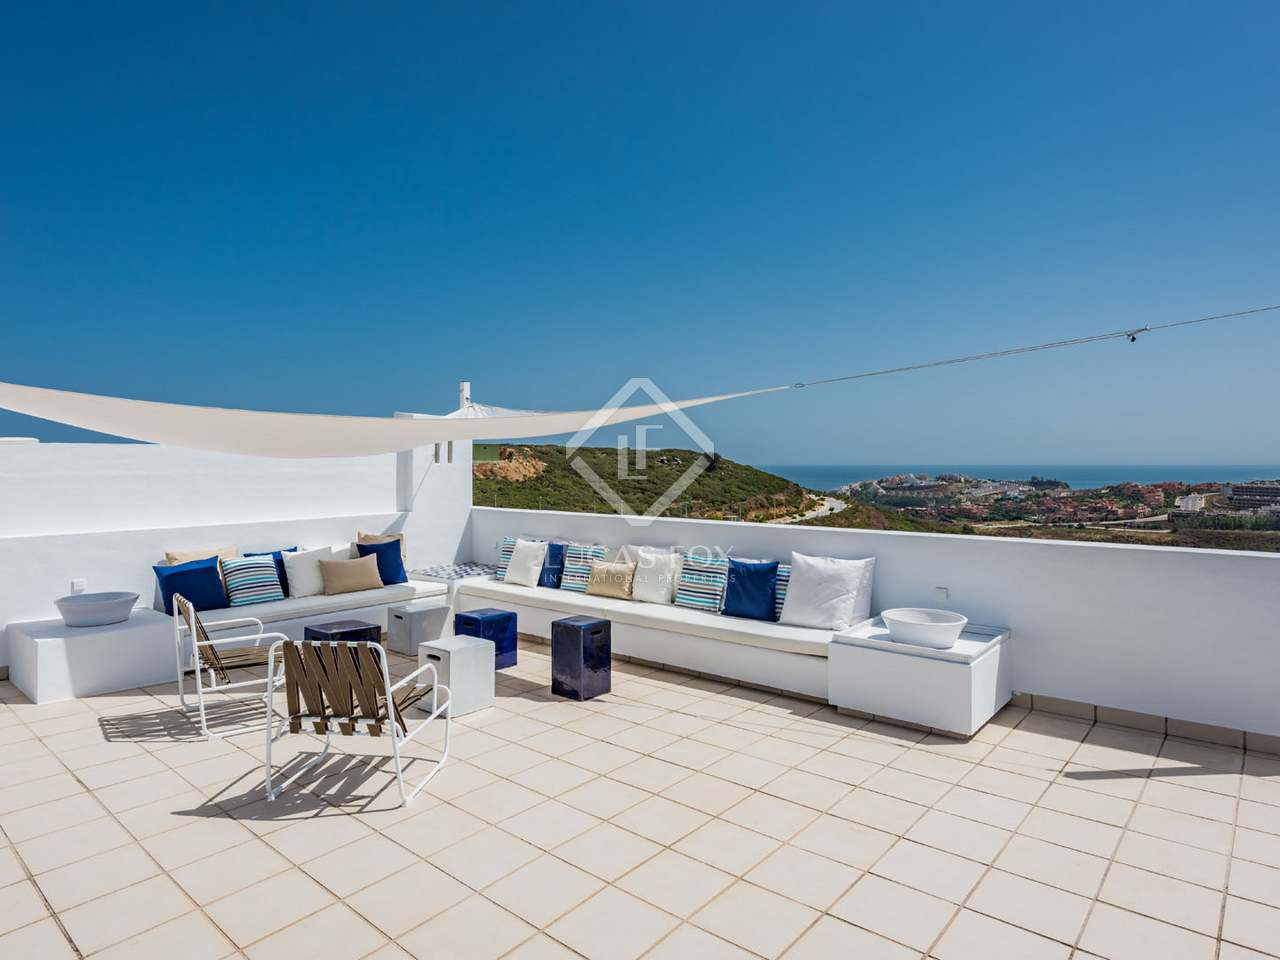 2 bedroom penthouse for sale in a new development in casares for Terrazas 1280 a